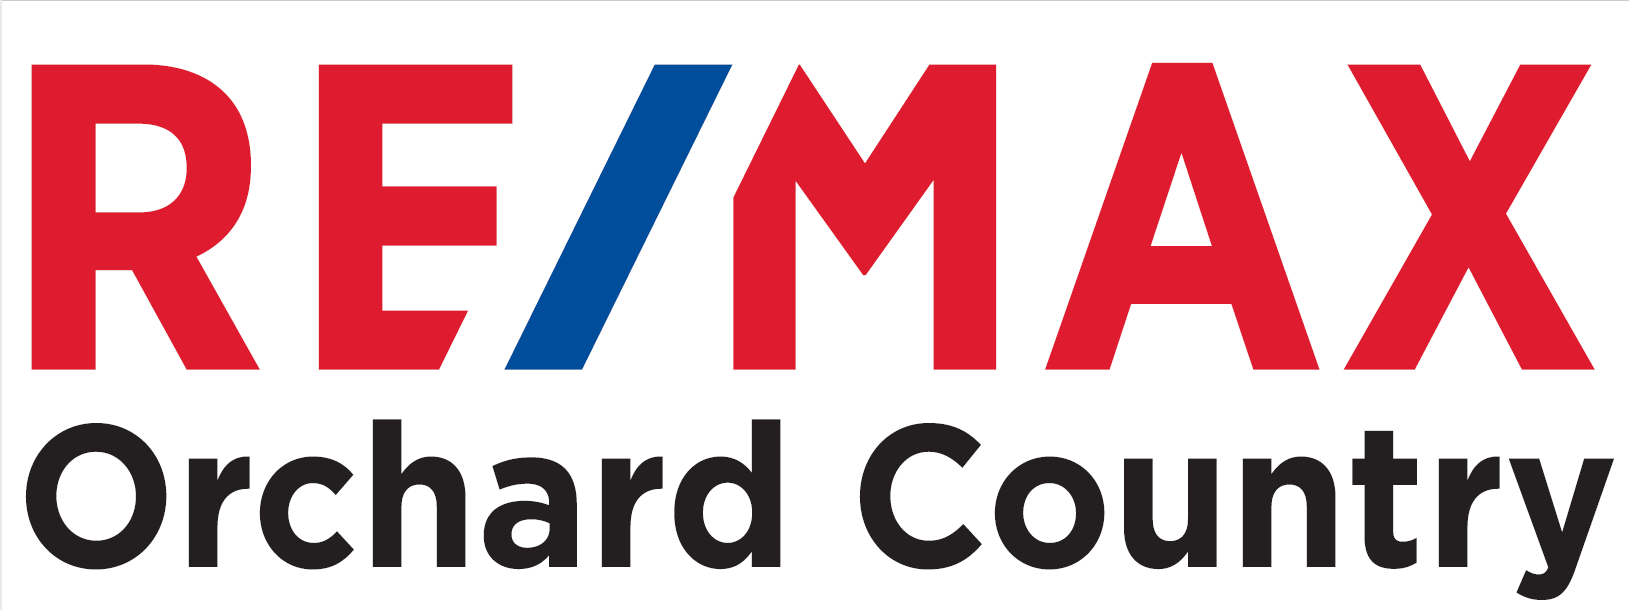 Remax Orchard Country logo